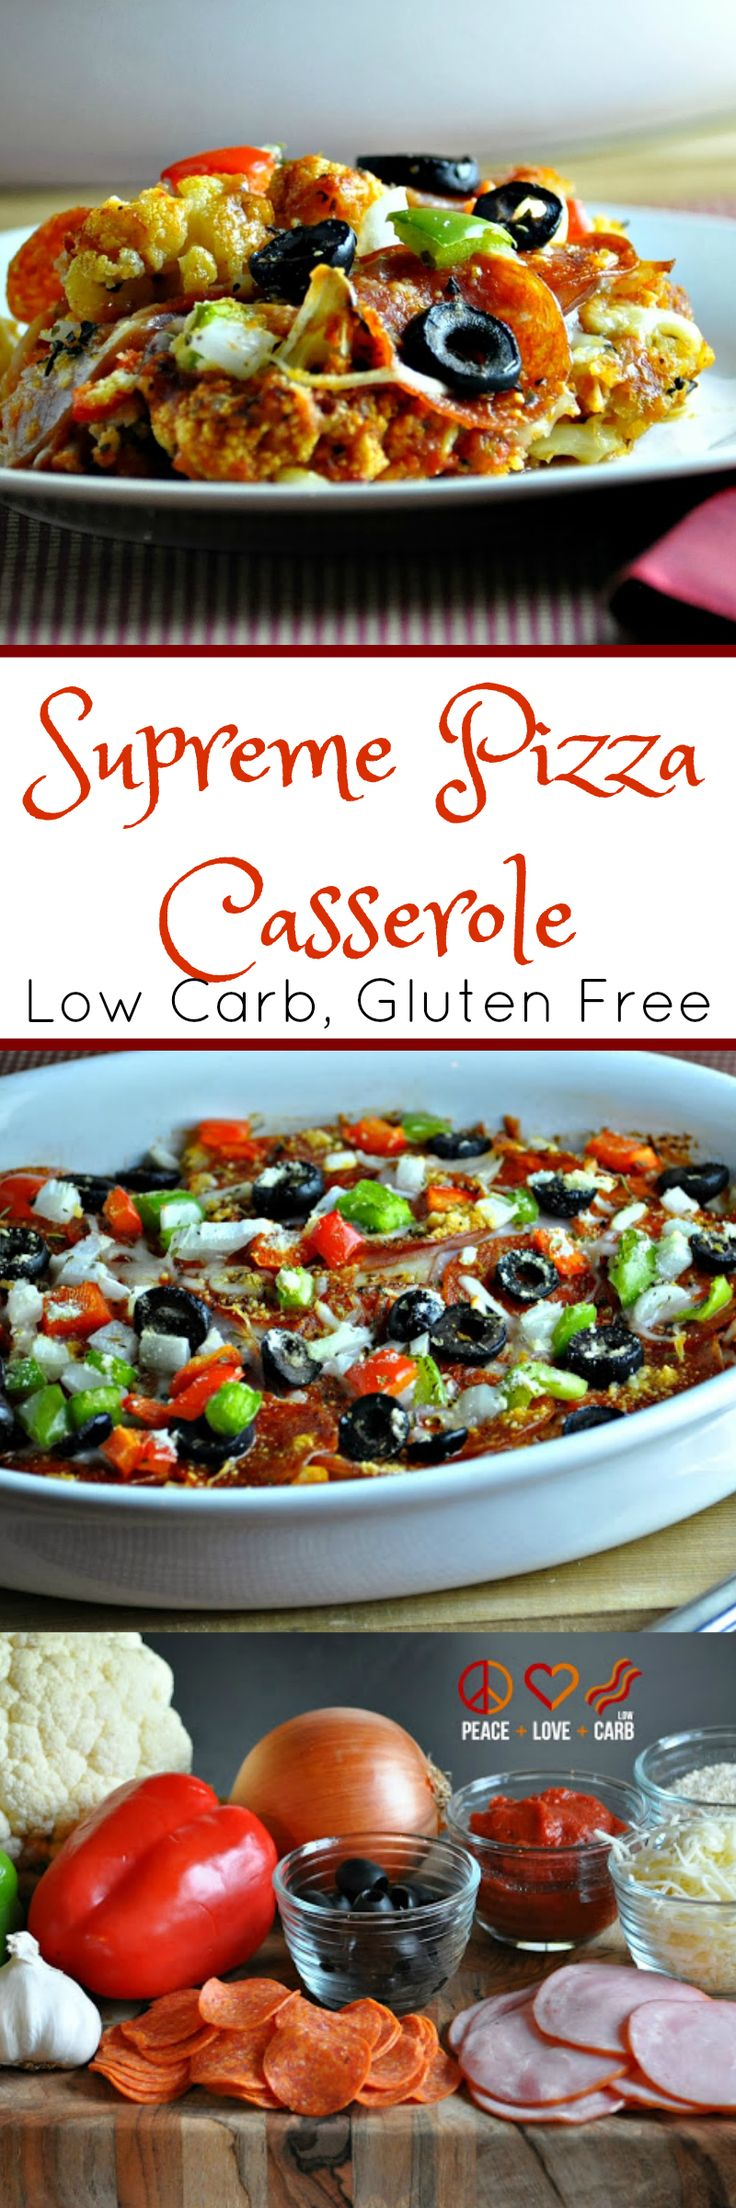 Supreme Pizza Cauliflower Casserole - Low Carb, Gluten Free   Peace Love and Low Carb via @PeaceLoveLoCarb